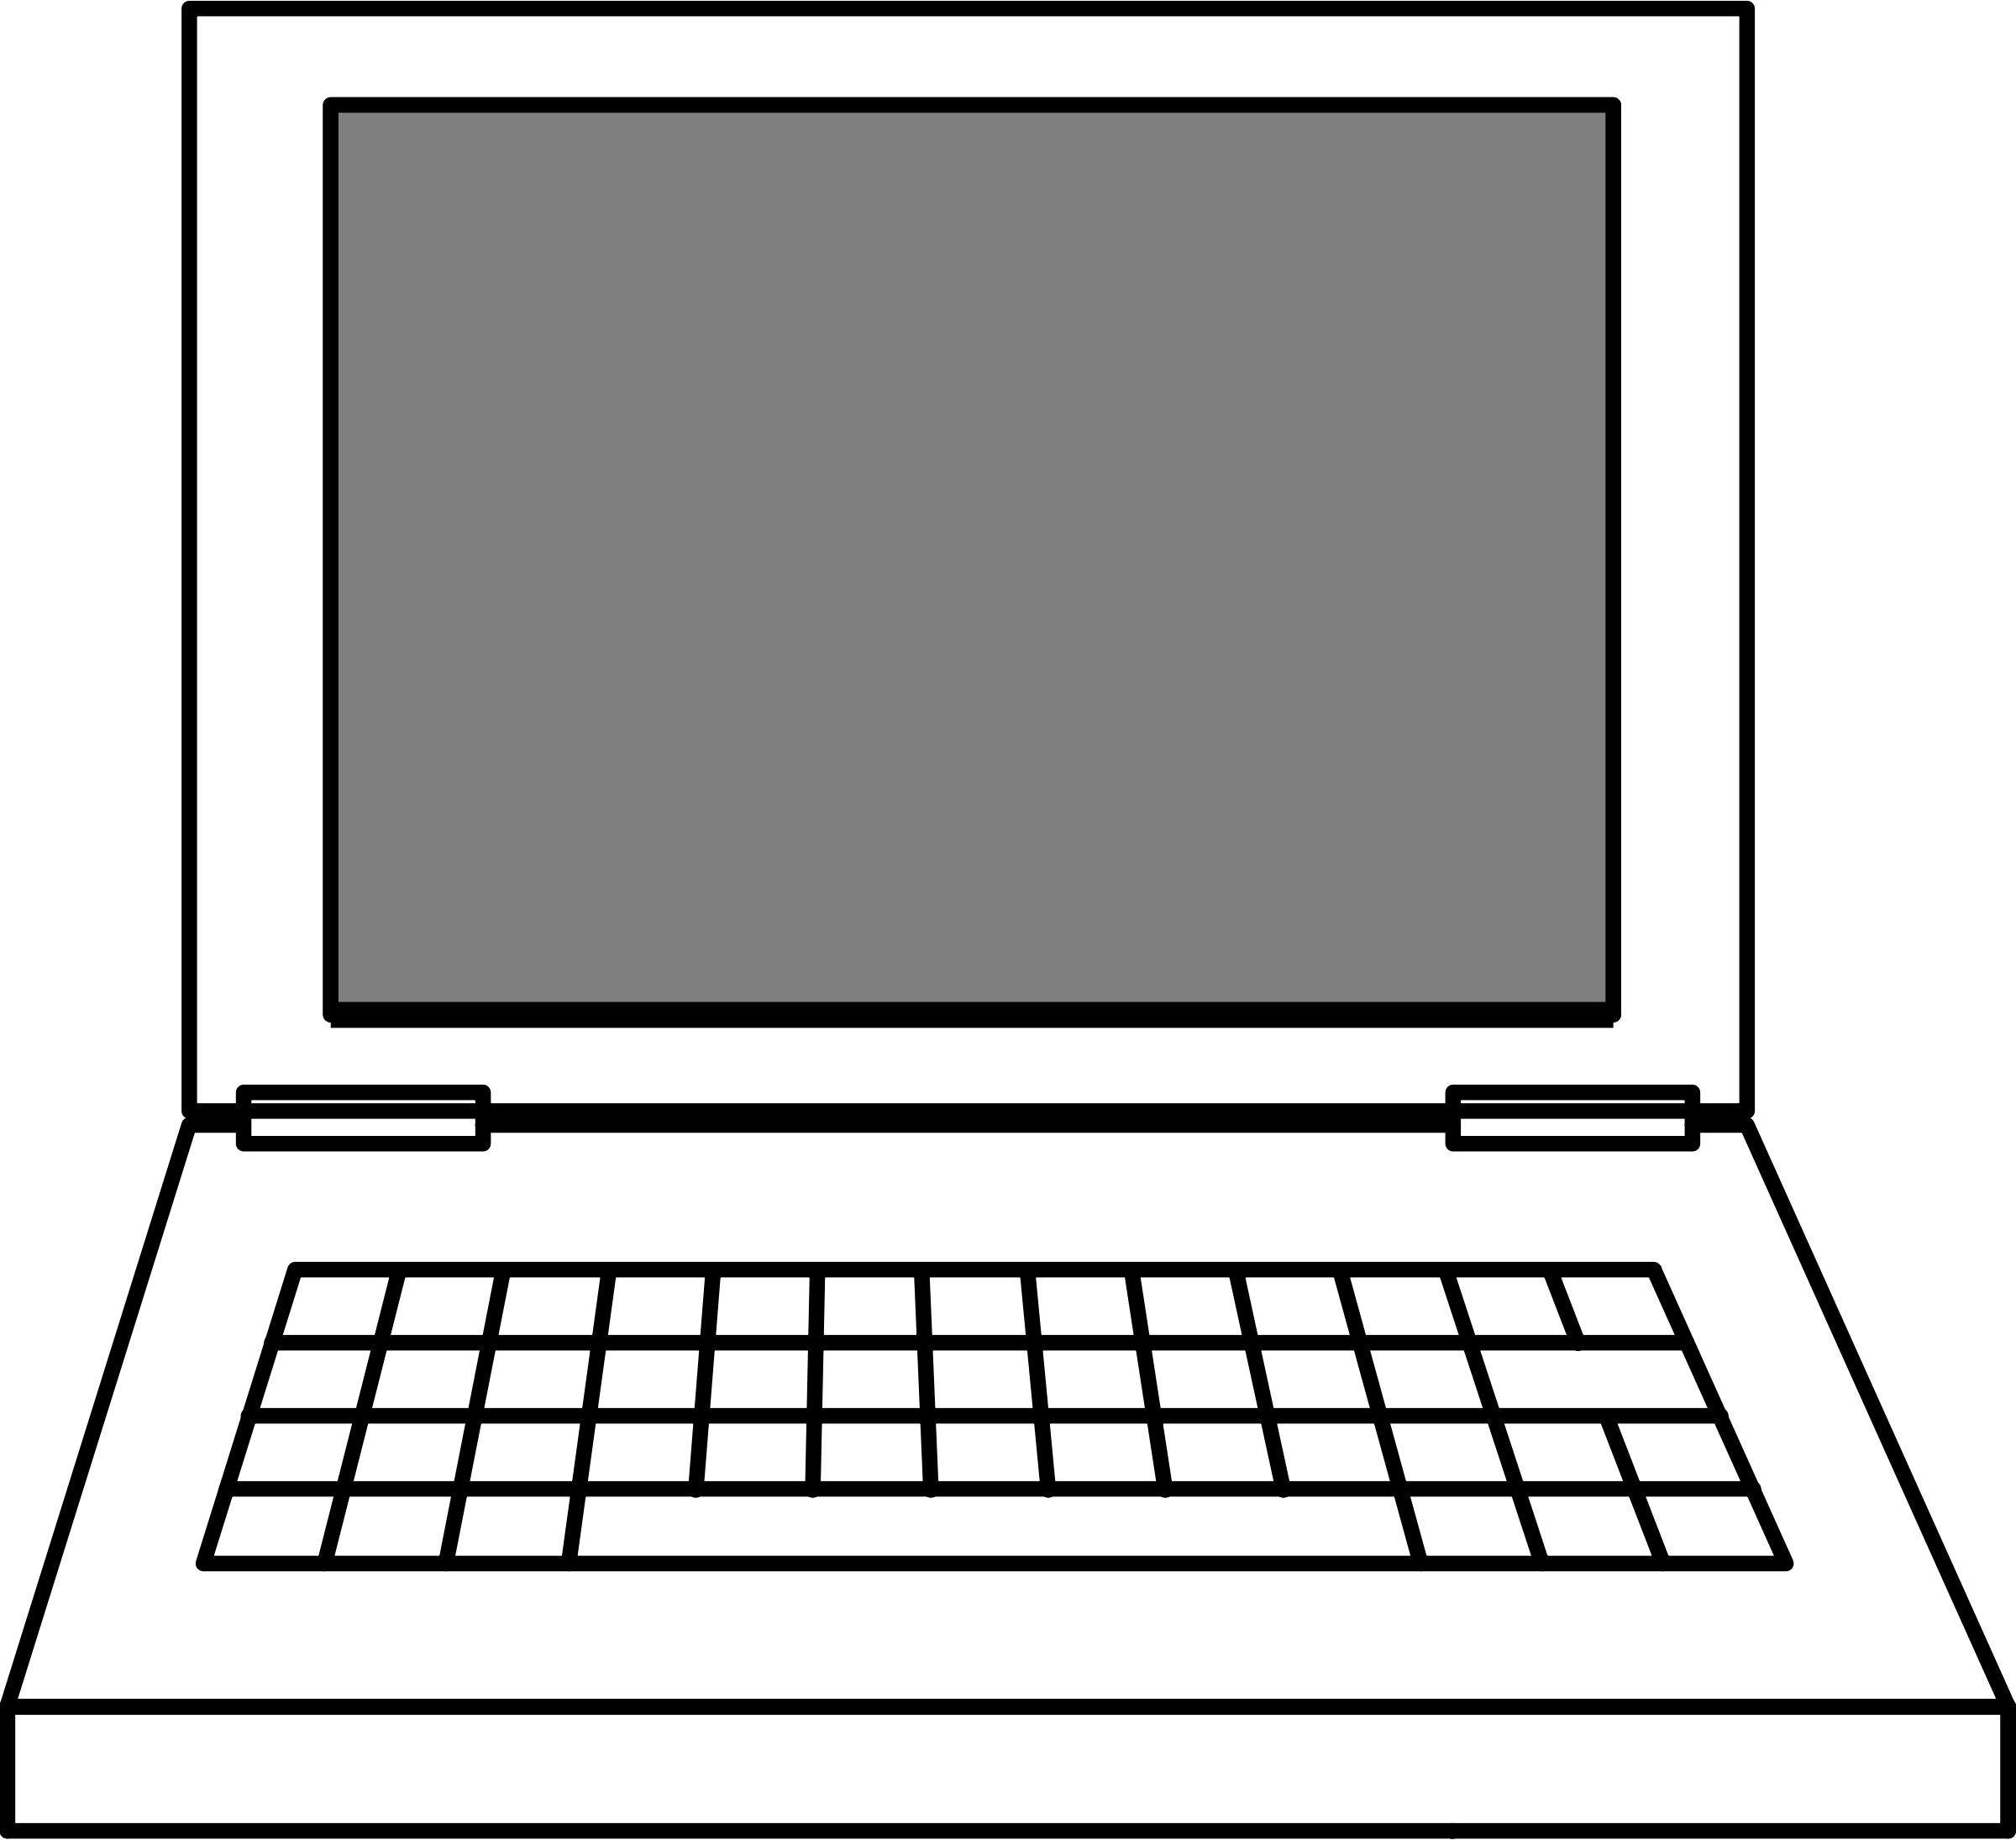 Laptop transparent background clipartxtras. Keyboard clipart coloring page